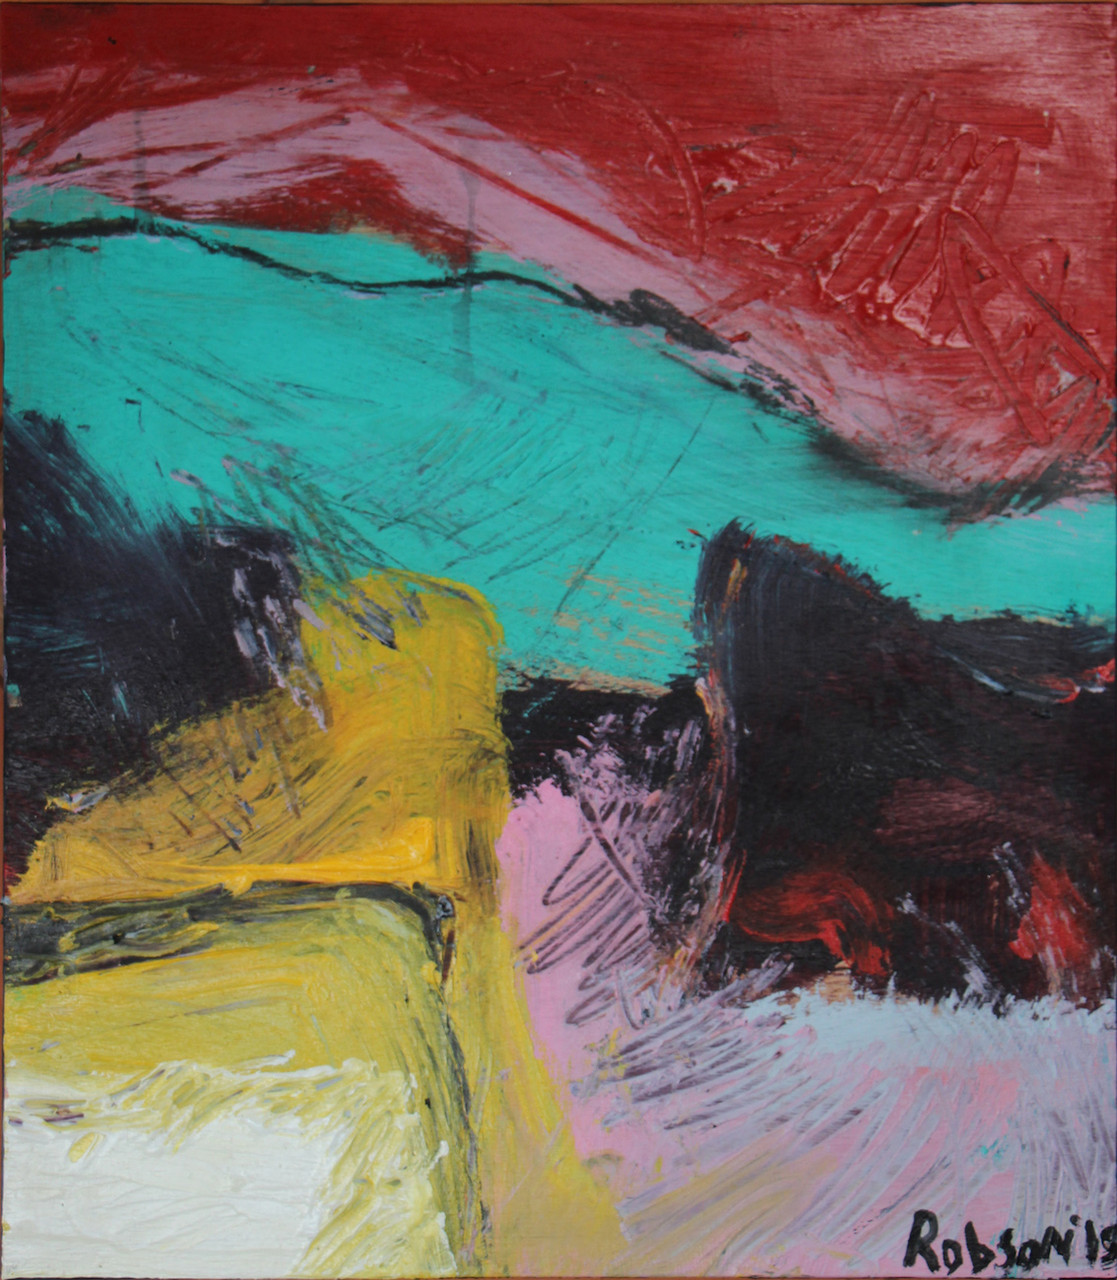 Trish Robson  -' untitled#4' - acrylic on wood panel - 35x40cm- 2015 - sold $1005 set of 4